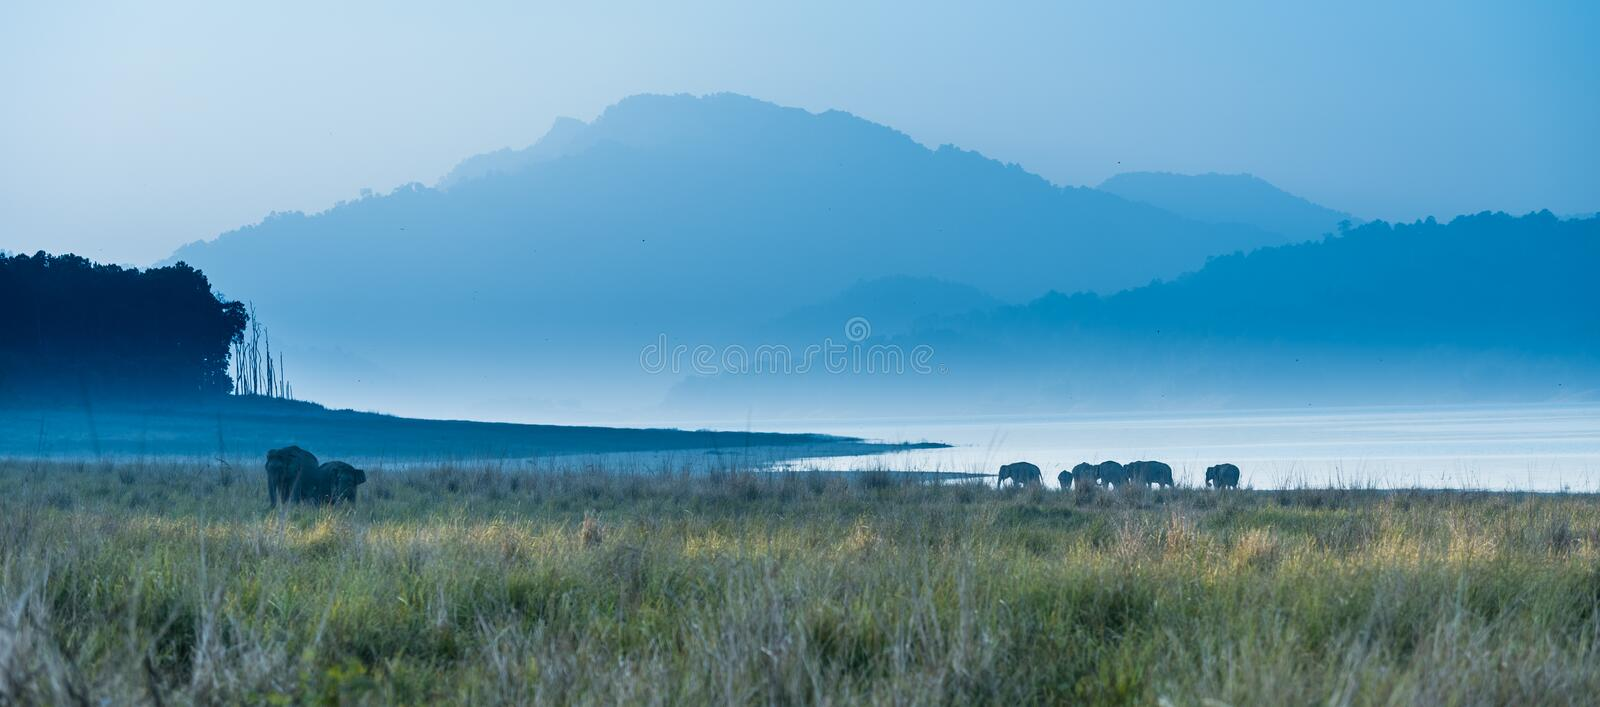 Land of Elephants at Jim Corbett stock image